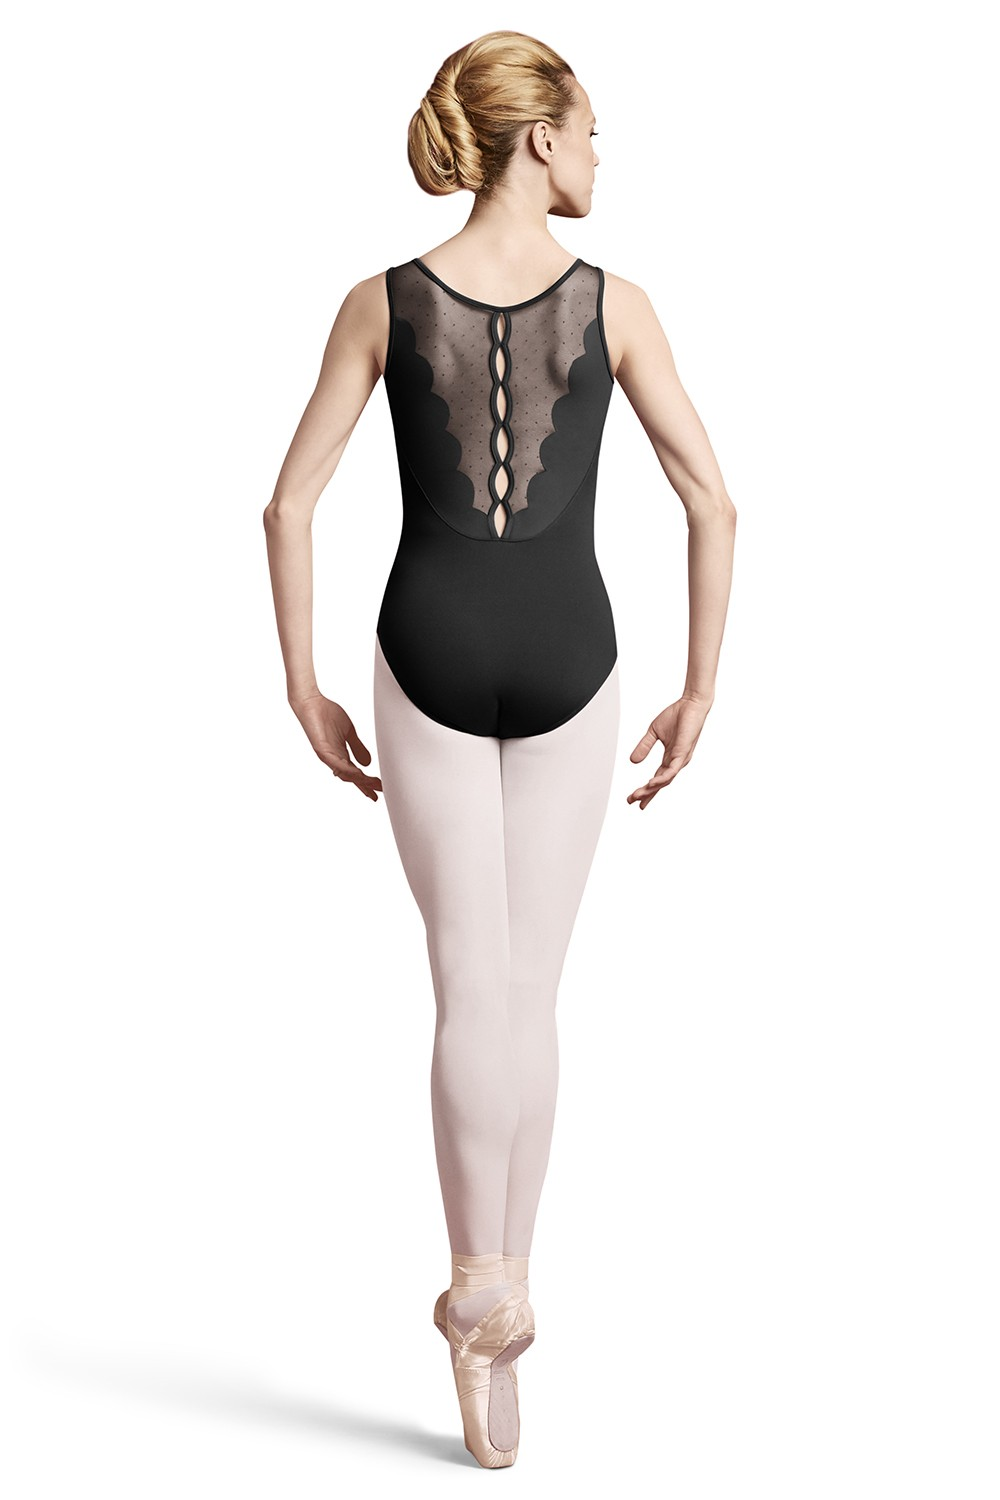 Adella Women's Dance Leotards